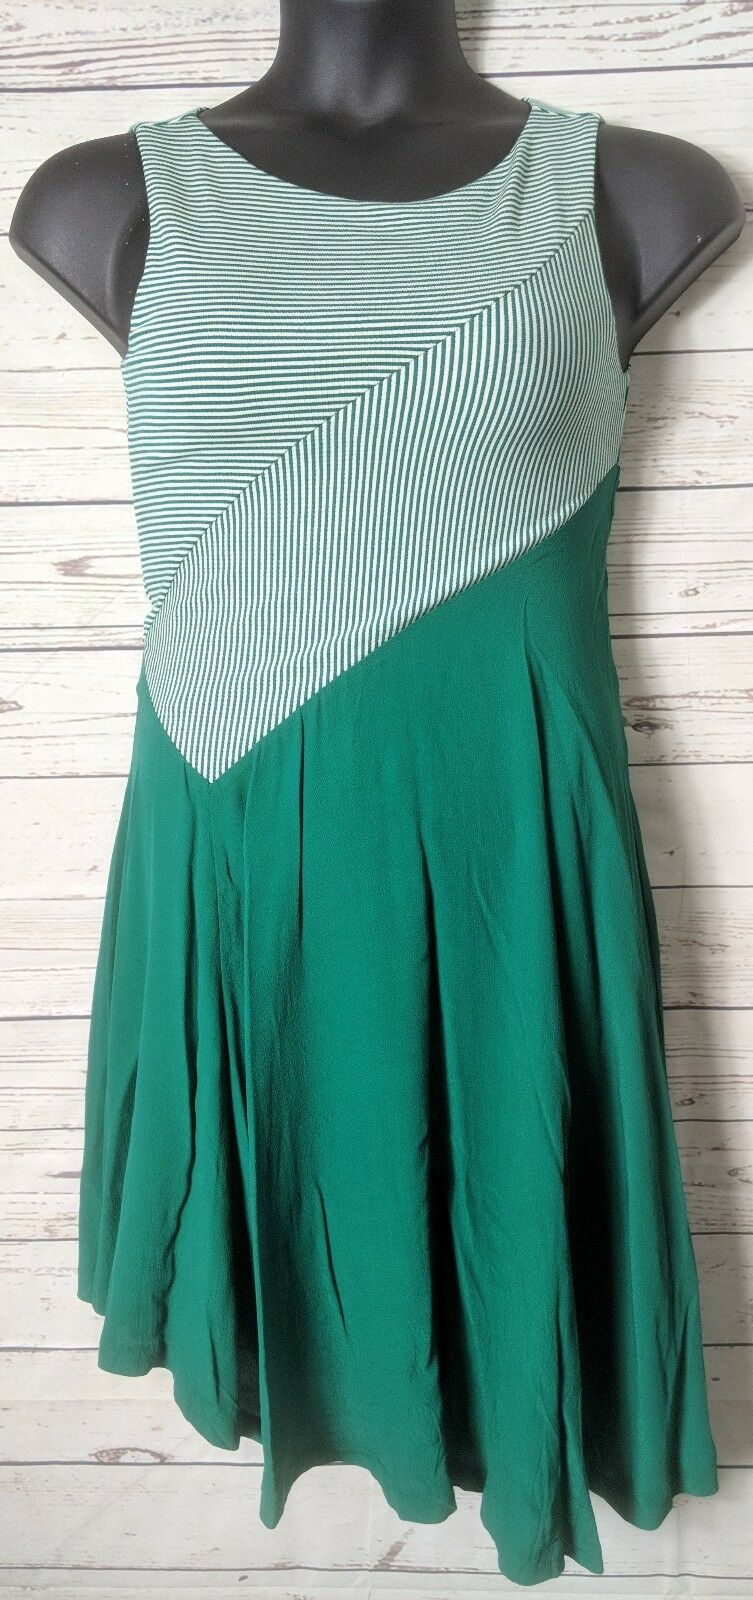 Maeve Anthropologie XS Extra Small Cameron Dress Grün Stripe Diagonal Waist